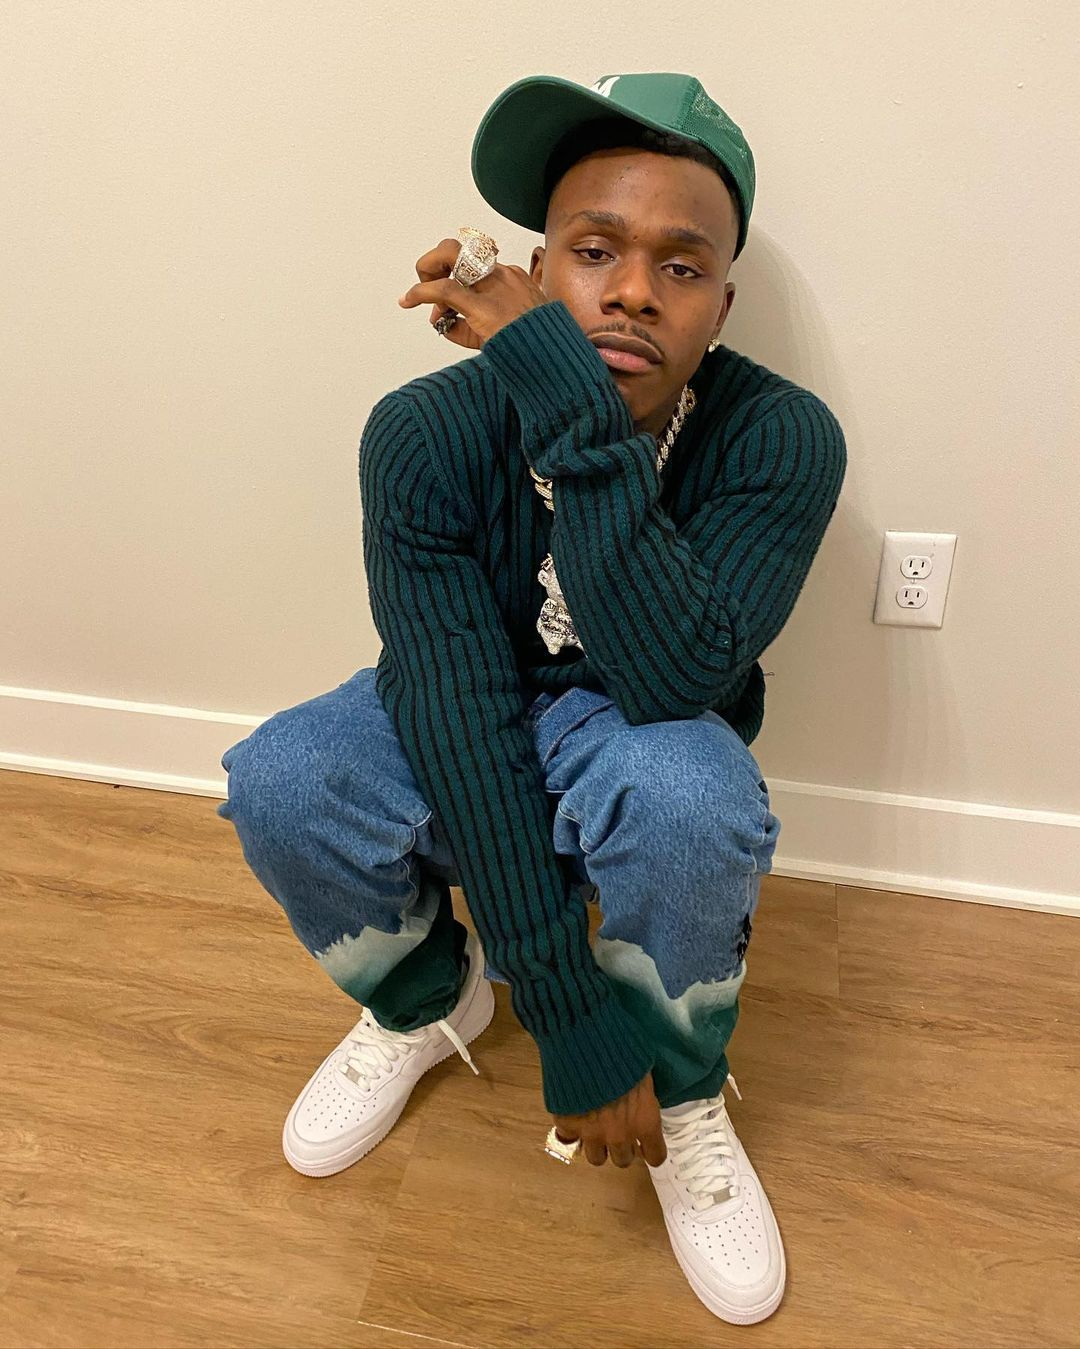 dababy-arrested-olamide-baddo-most-indigenous-artist-arsenal-takes-loan-latest-news-global-world-stories-friday-january-2020-style-rave